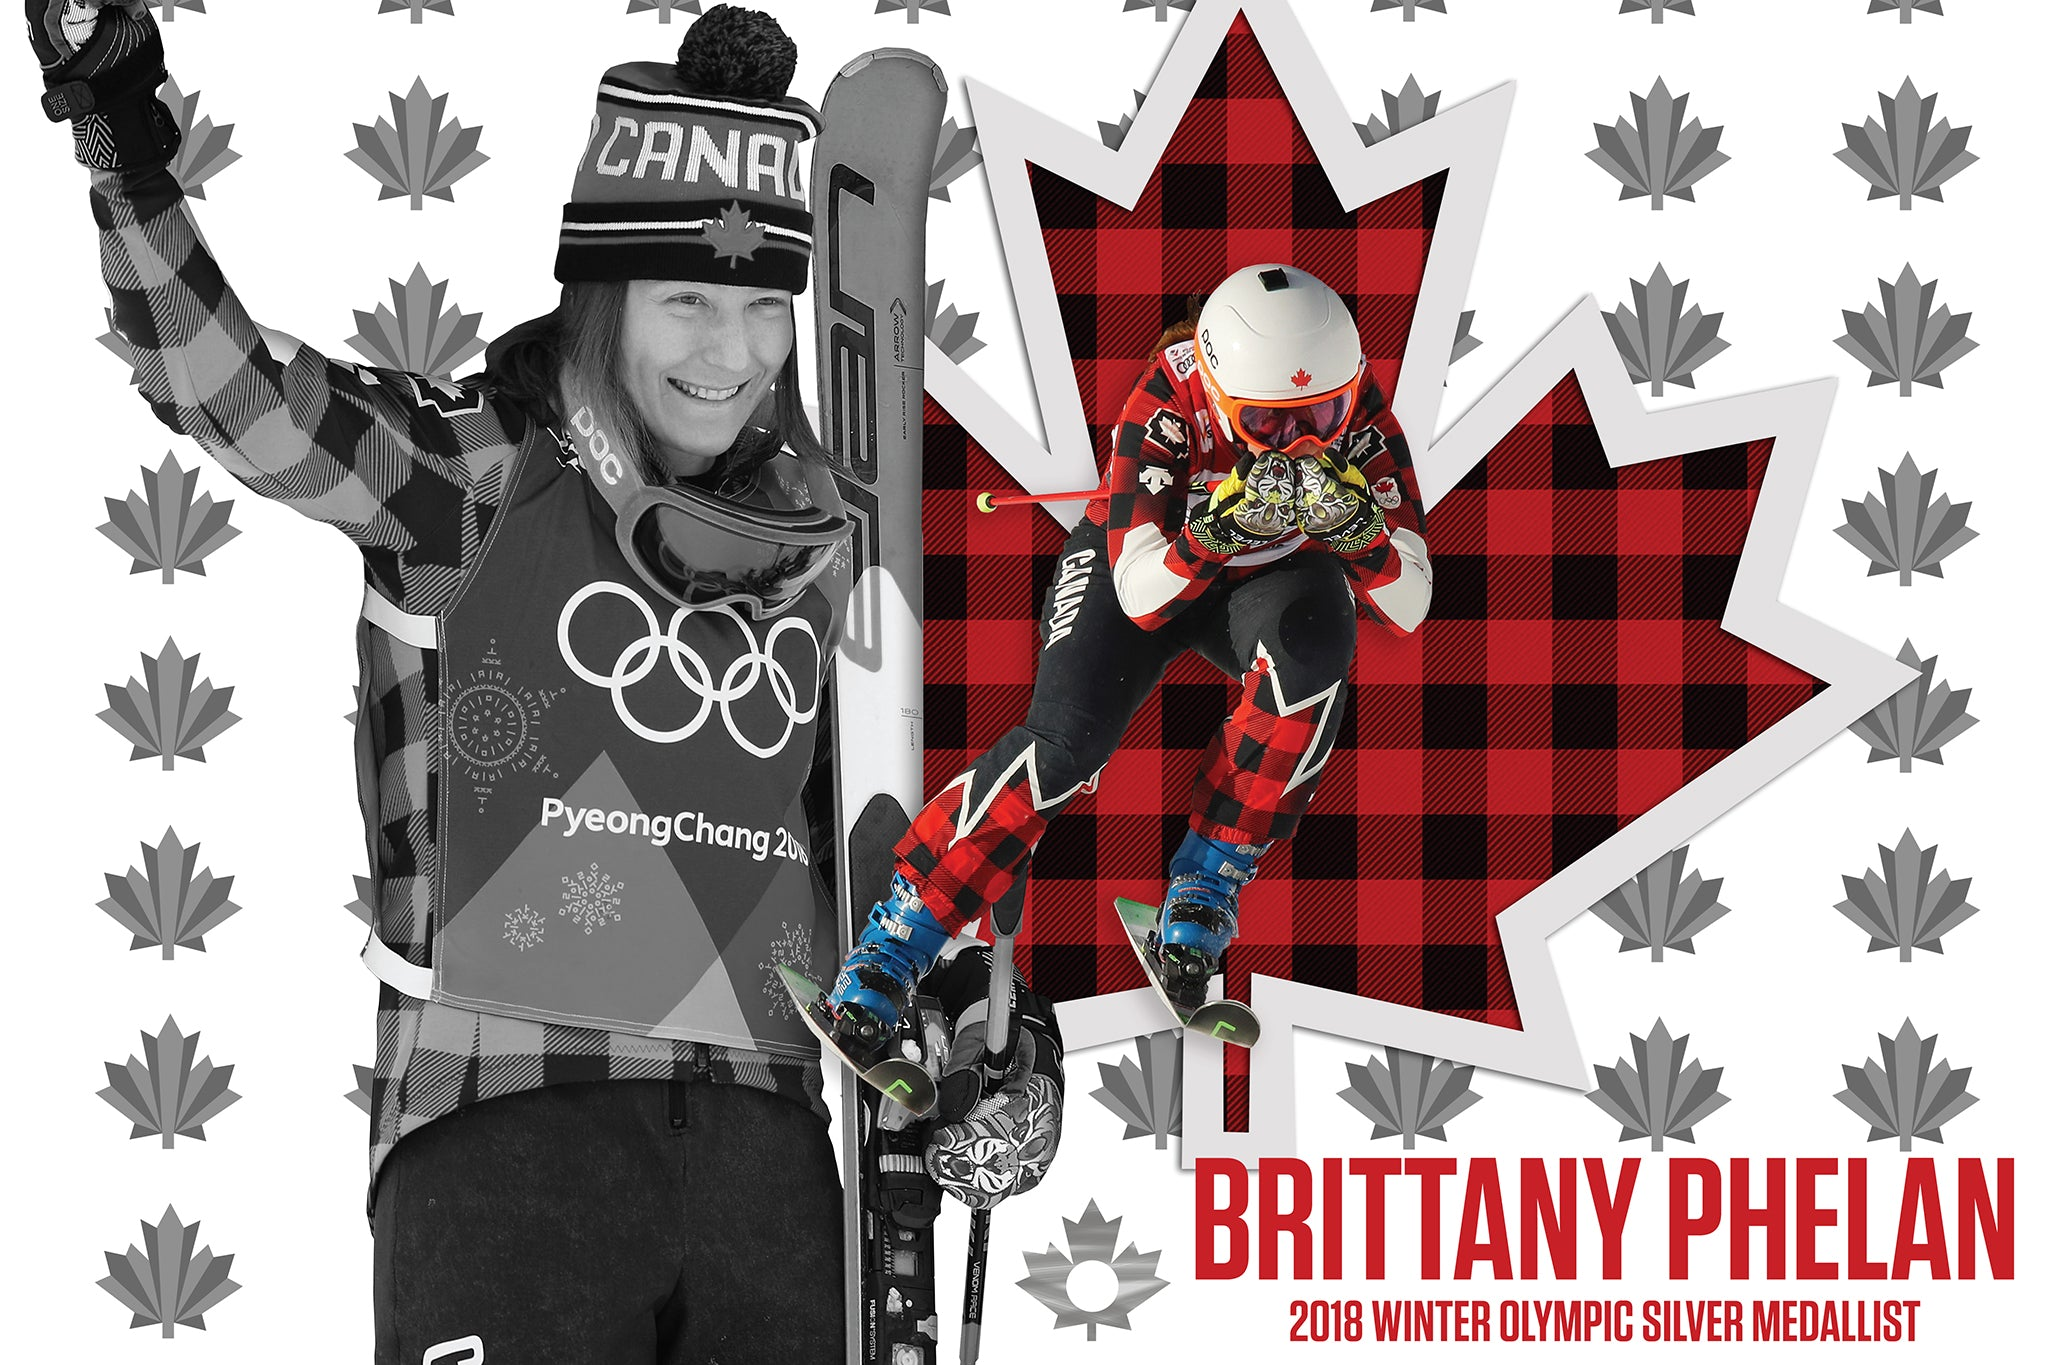 Signed Brittany Phelan Olympic Poster · Affiche Olympique autographiée par Brittany Phelan